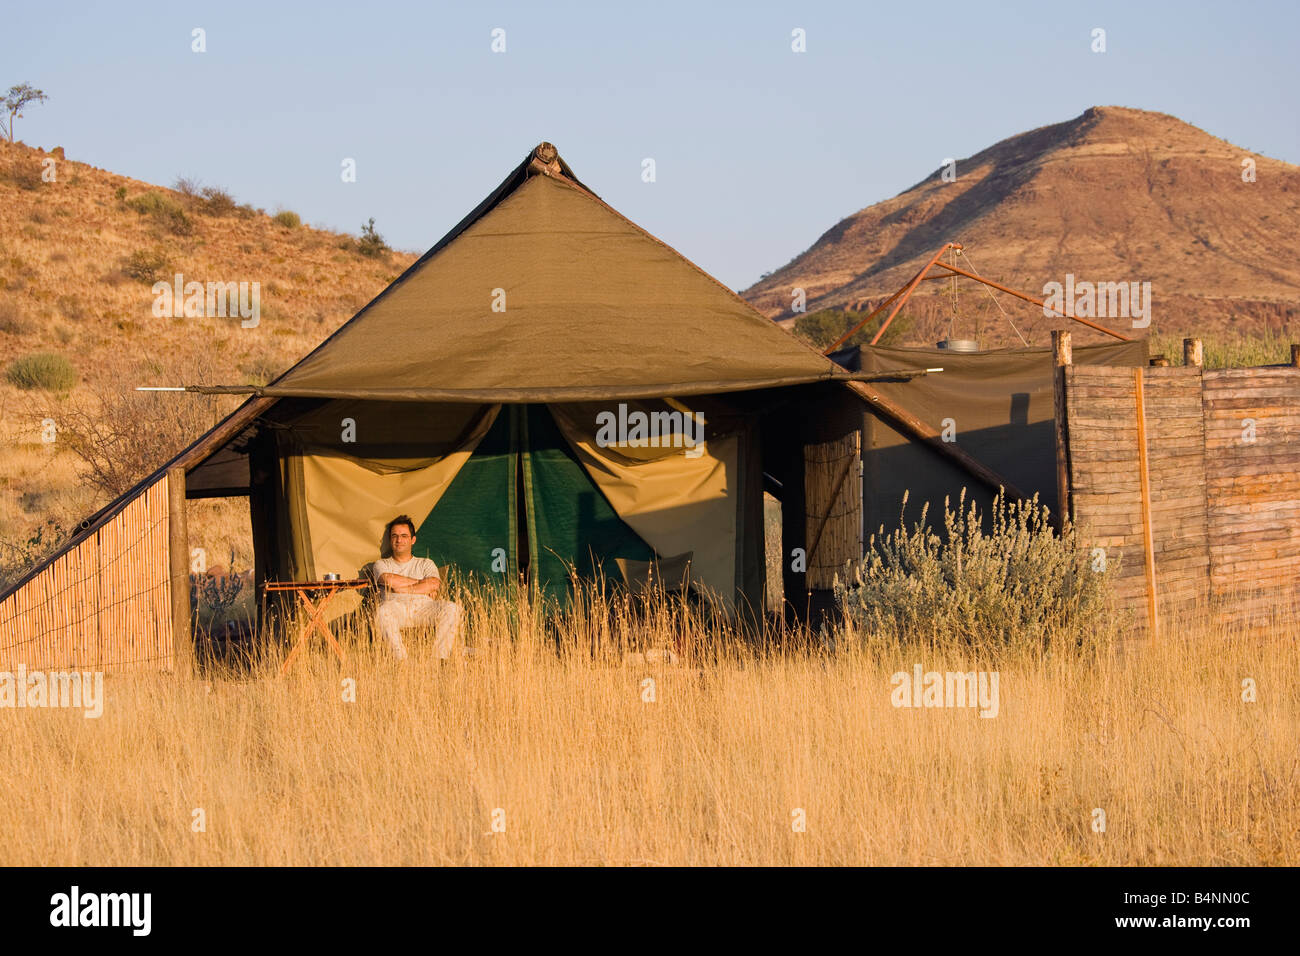 safari damara land Namibia Africa desert tent c& & safari damara land Namibia Africa desert tent camp Stock Photo ...